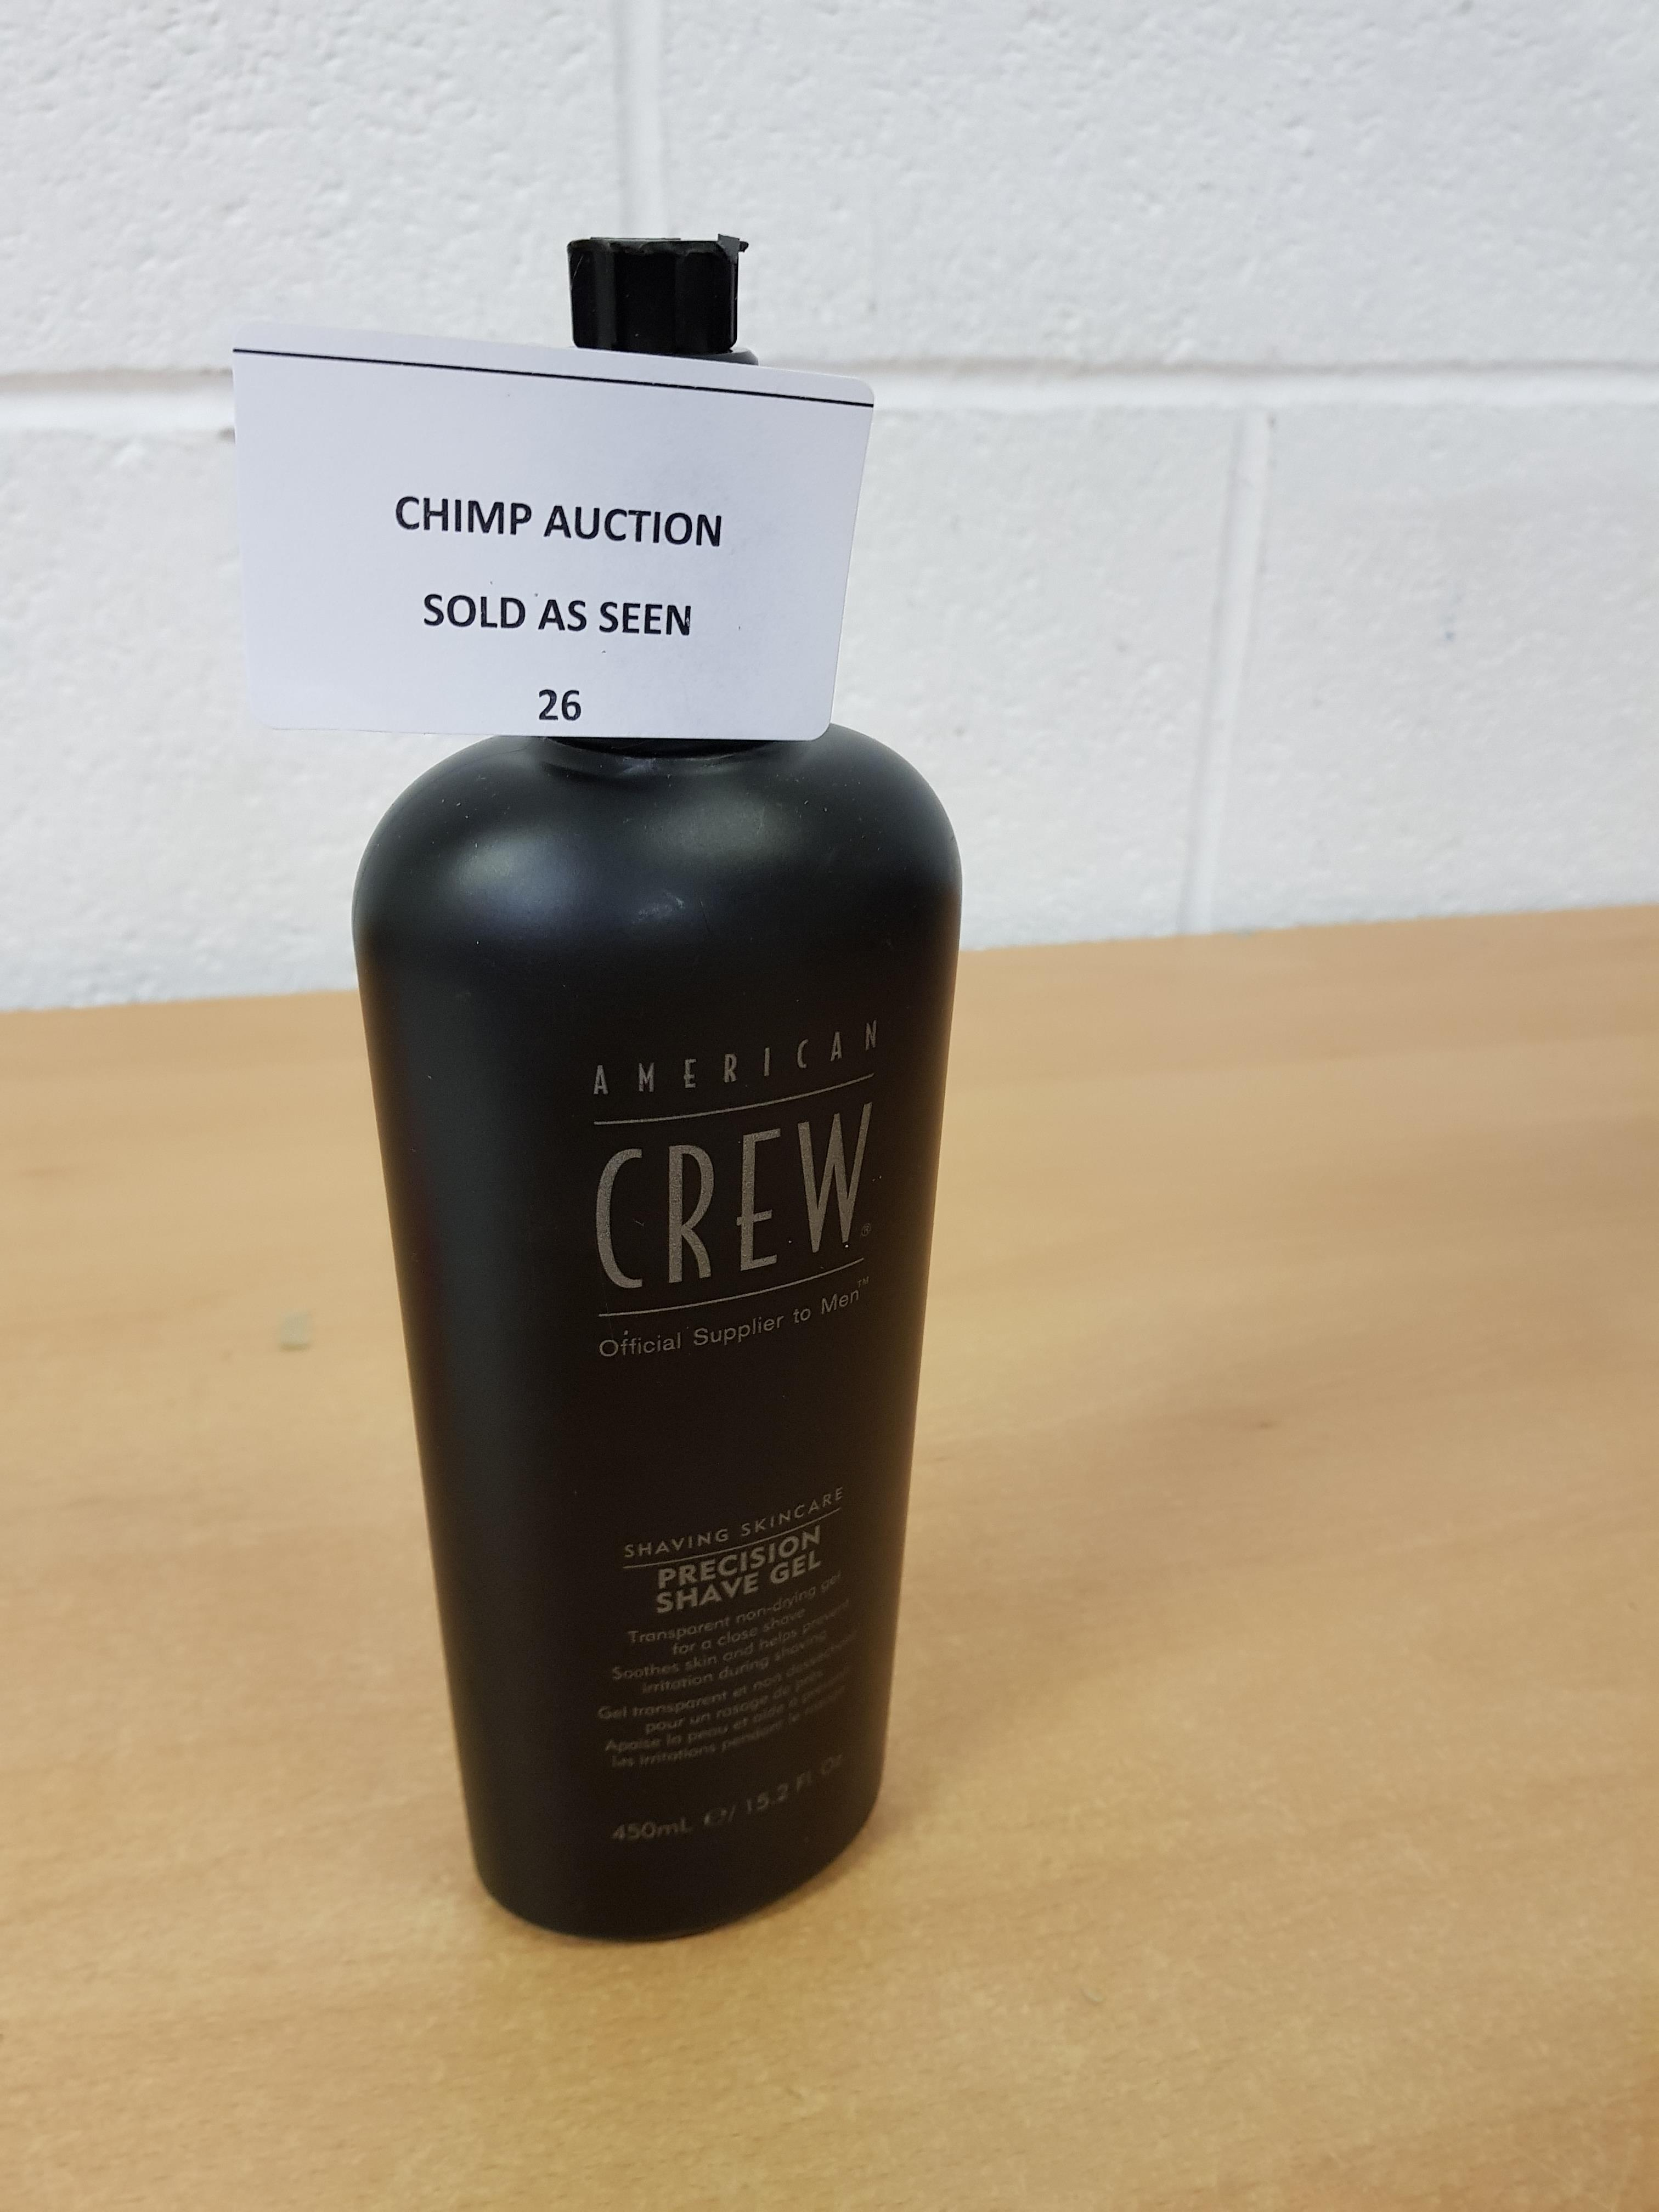 Lot 26 - Shave by American Crew Precision Shave Gel 450ml